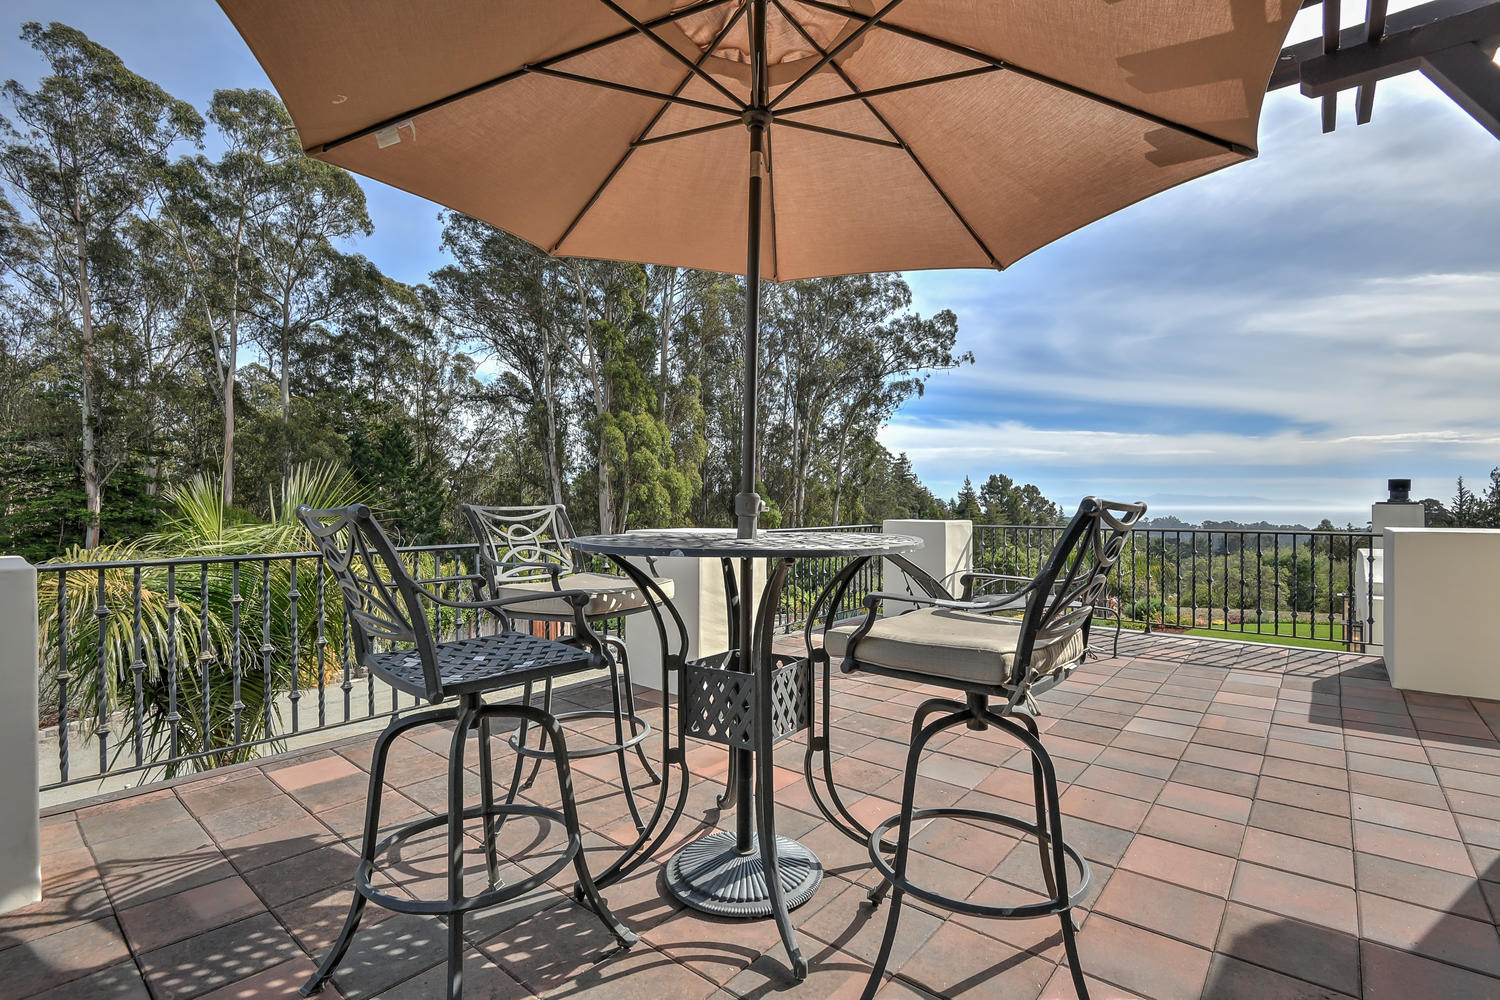 37_3737 Coyote Canyon Soquel CA-large-048-35-Front Balcony View-1500x1000-72dpi.jpg